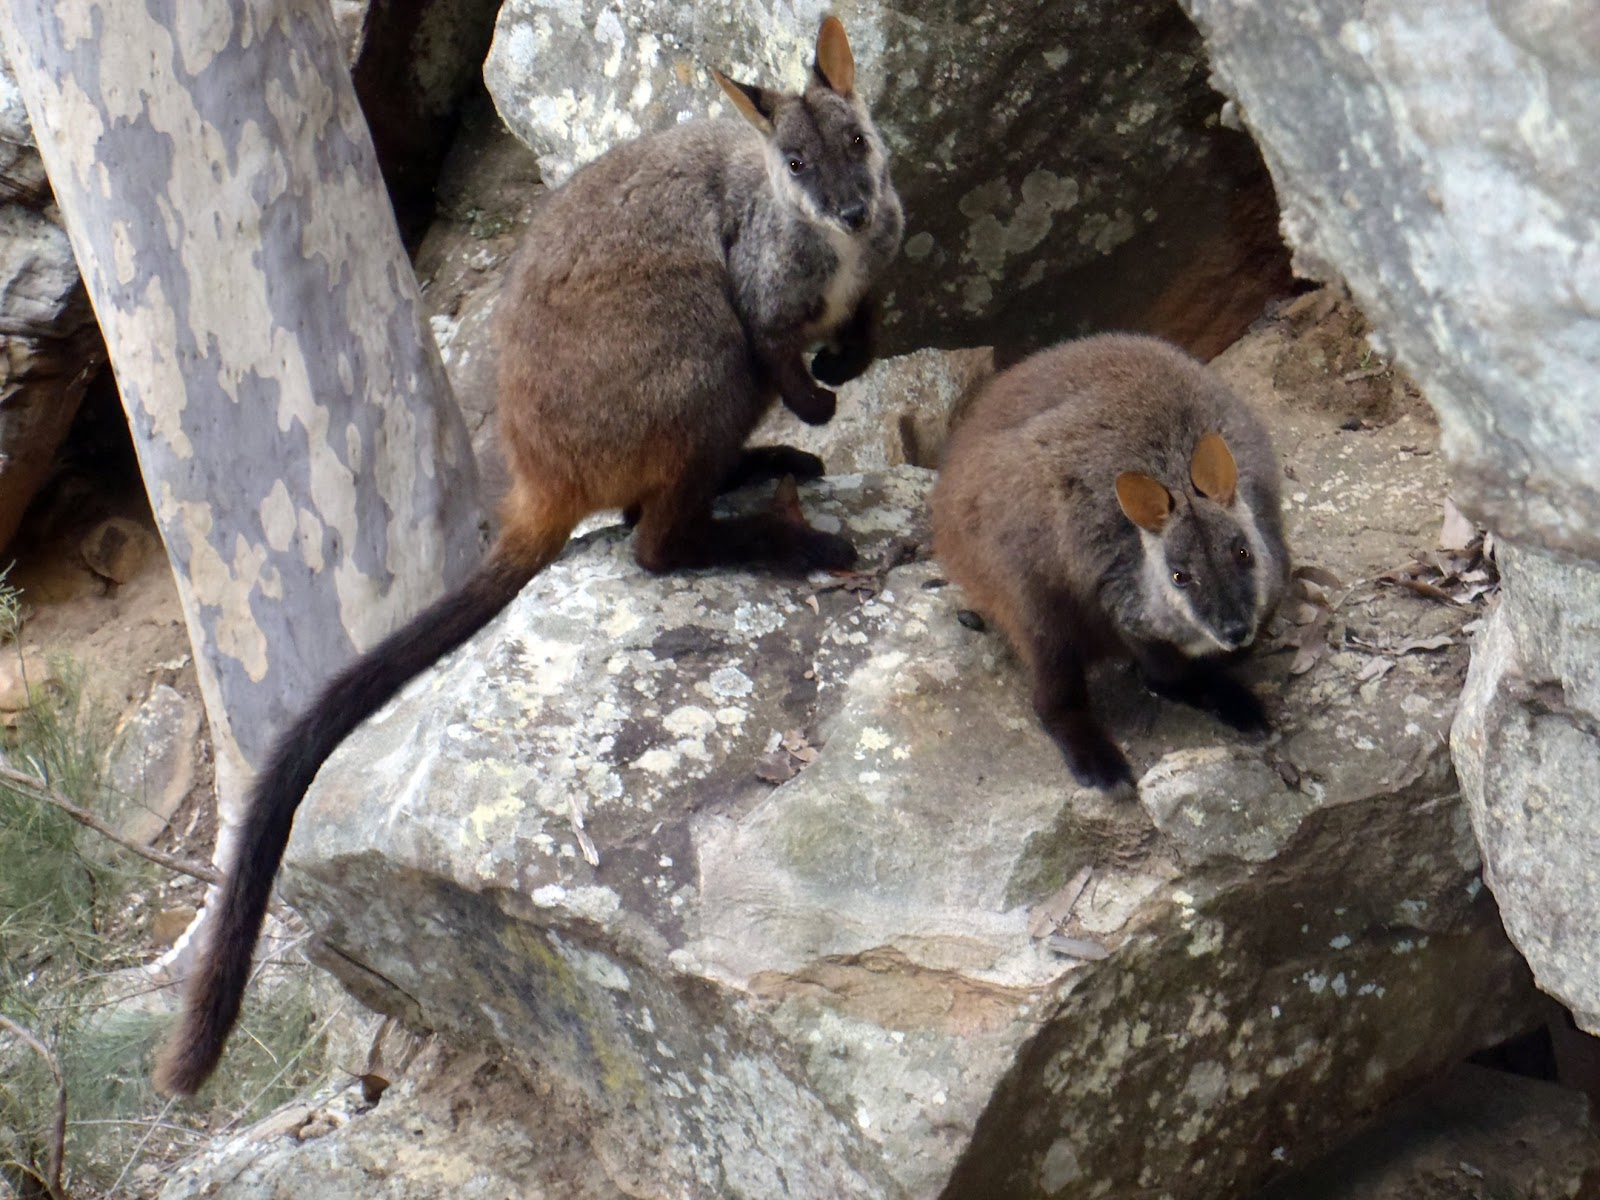 brush-tailed rock-wallabies